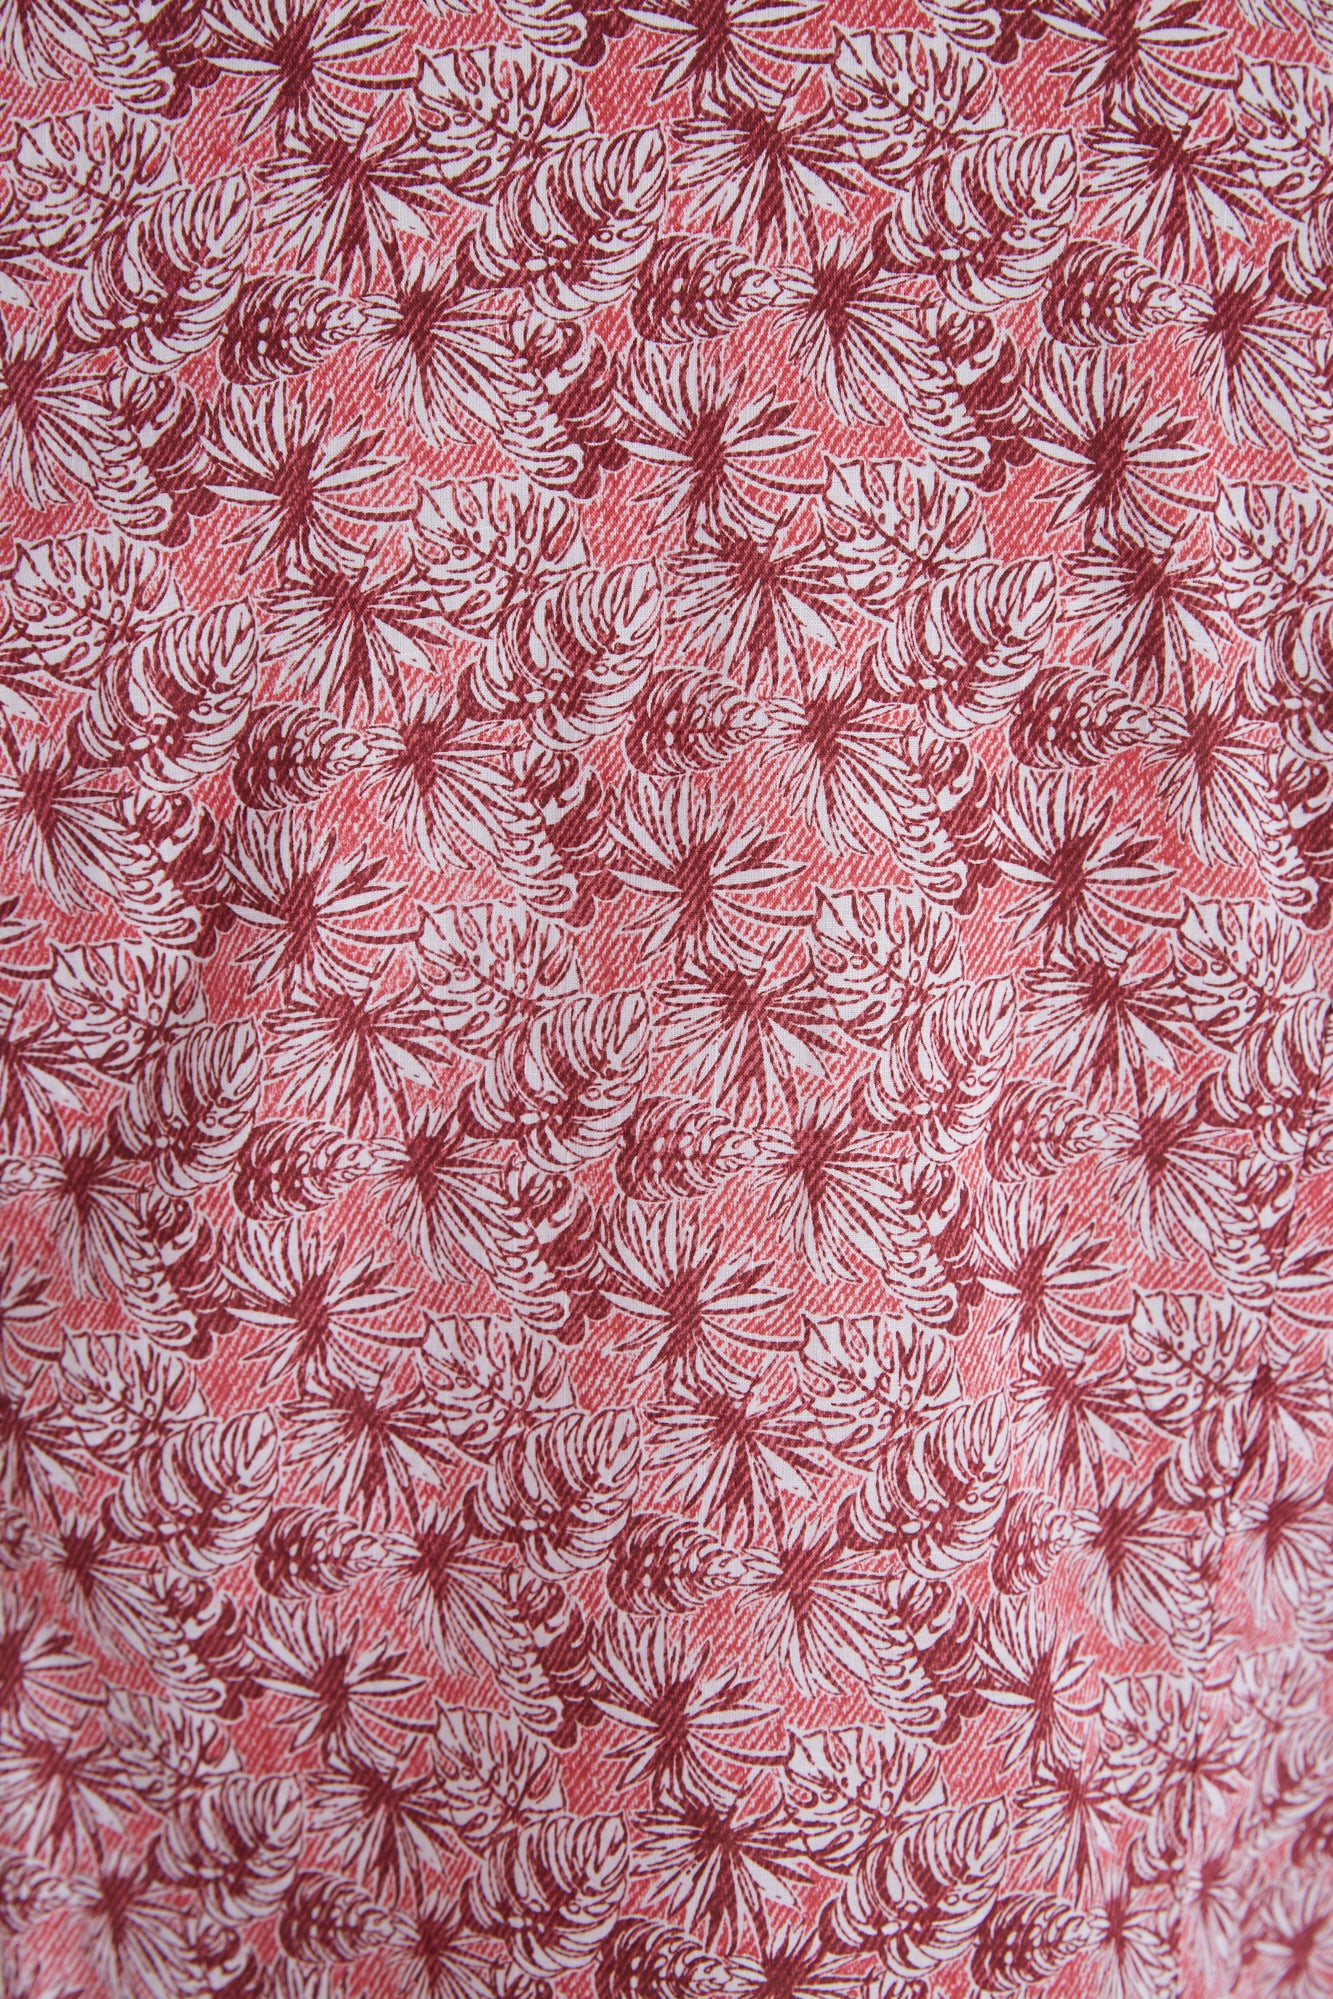 Tintoria Mattei Red Palm Tree Leaves Fabric